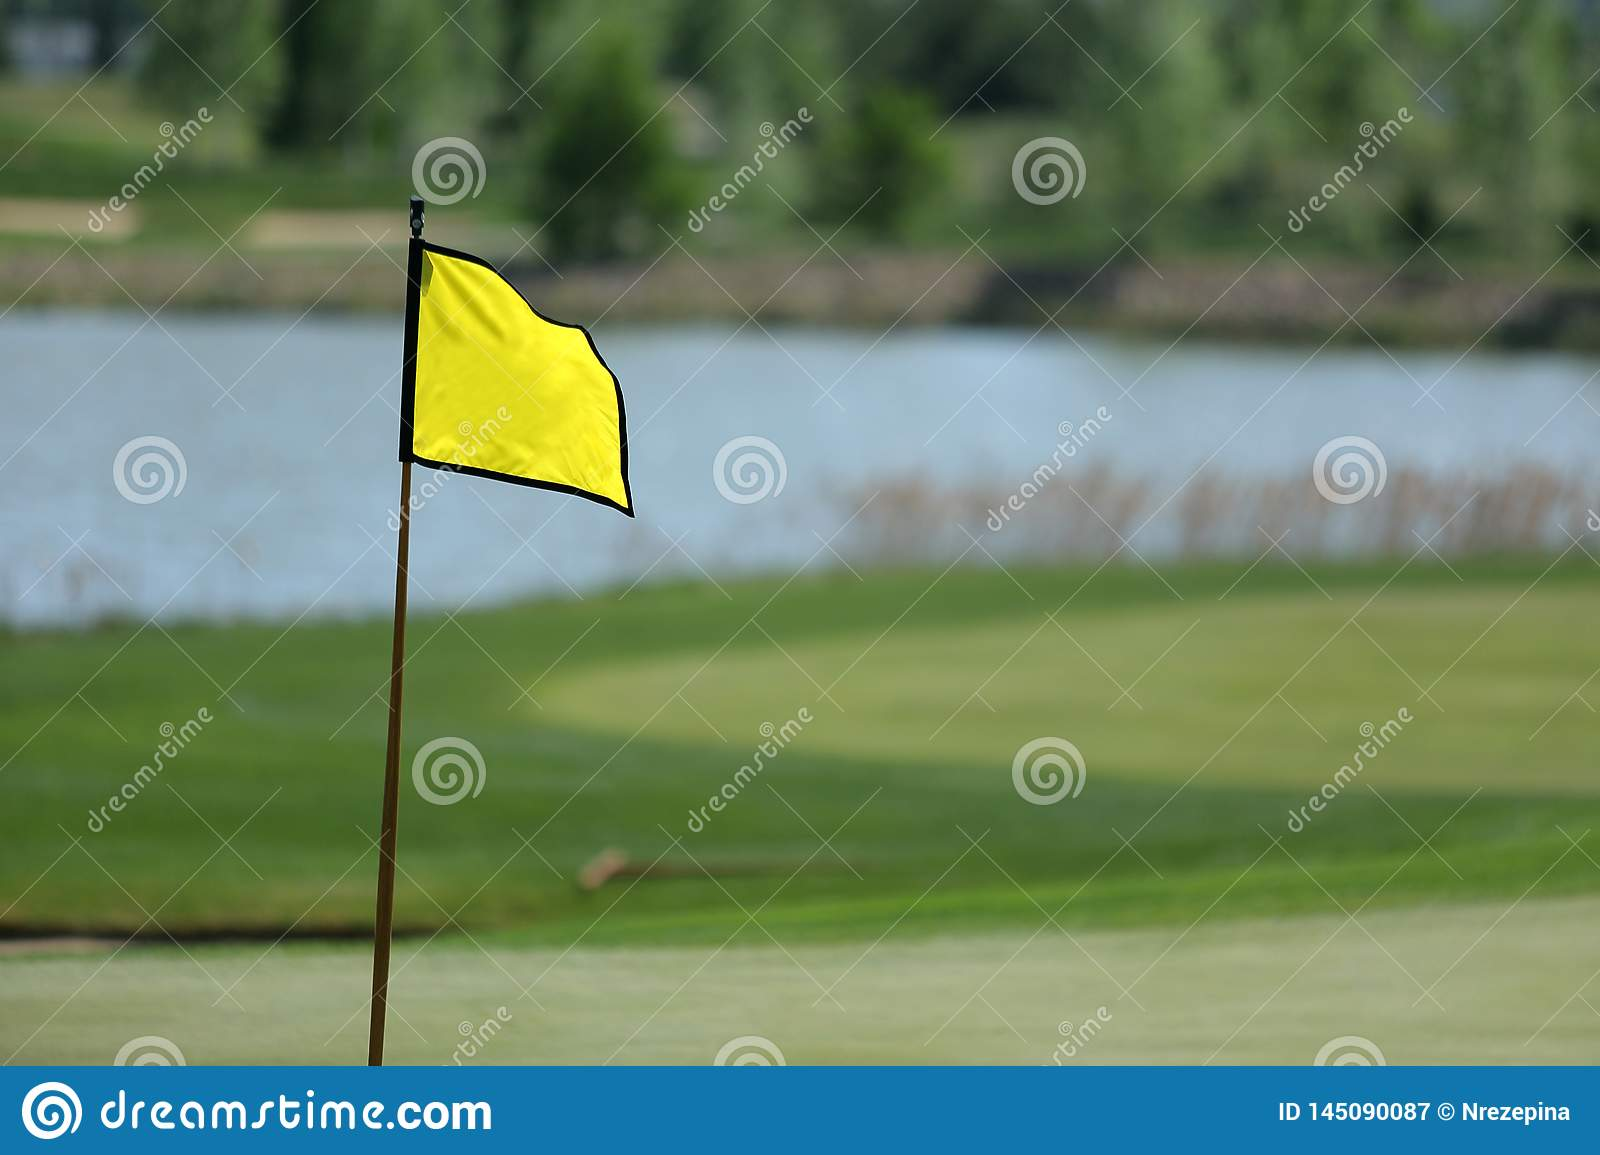 A golf course with roads, bunkers and ponds and with flag